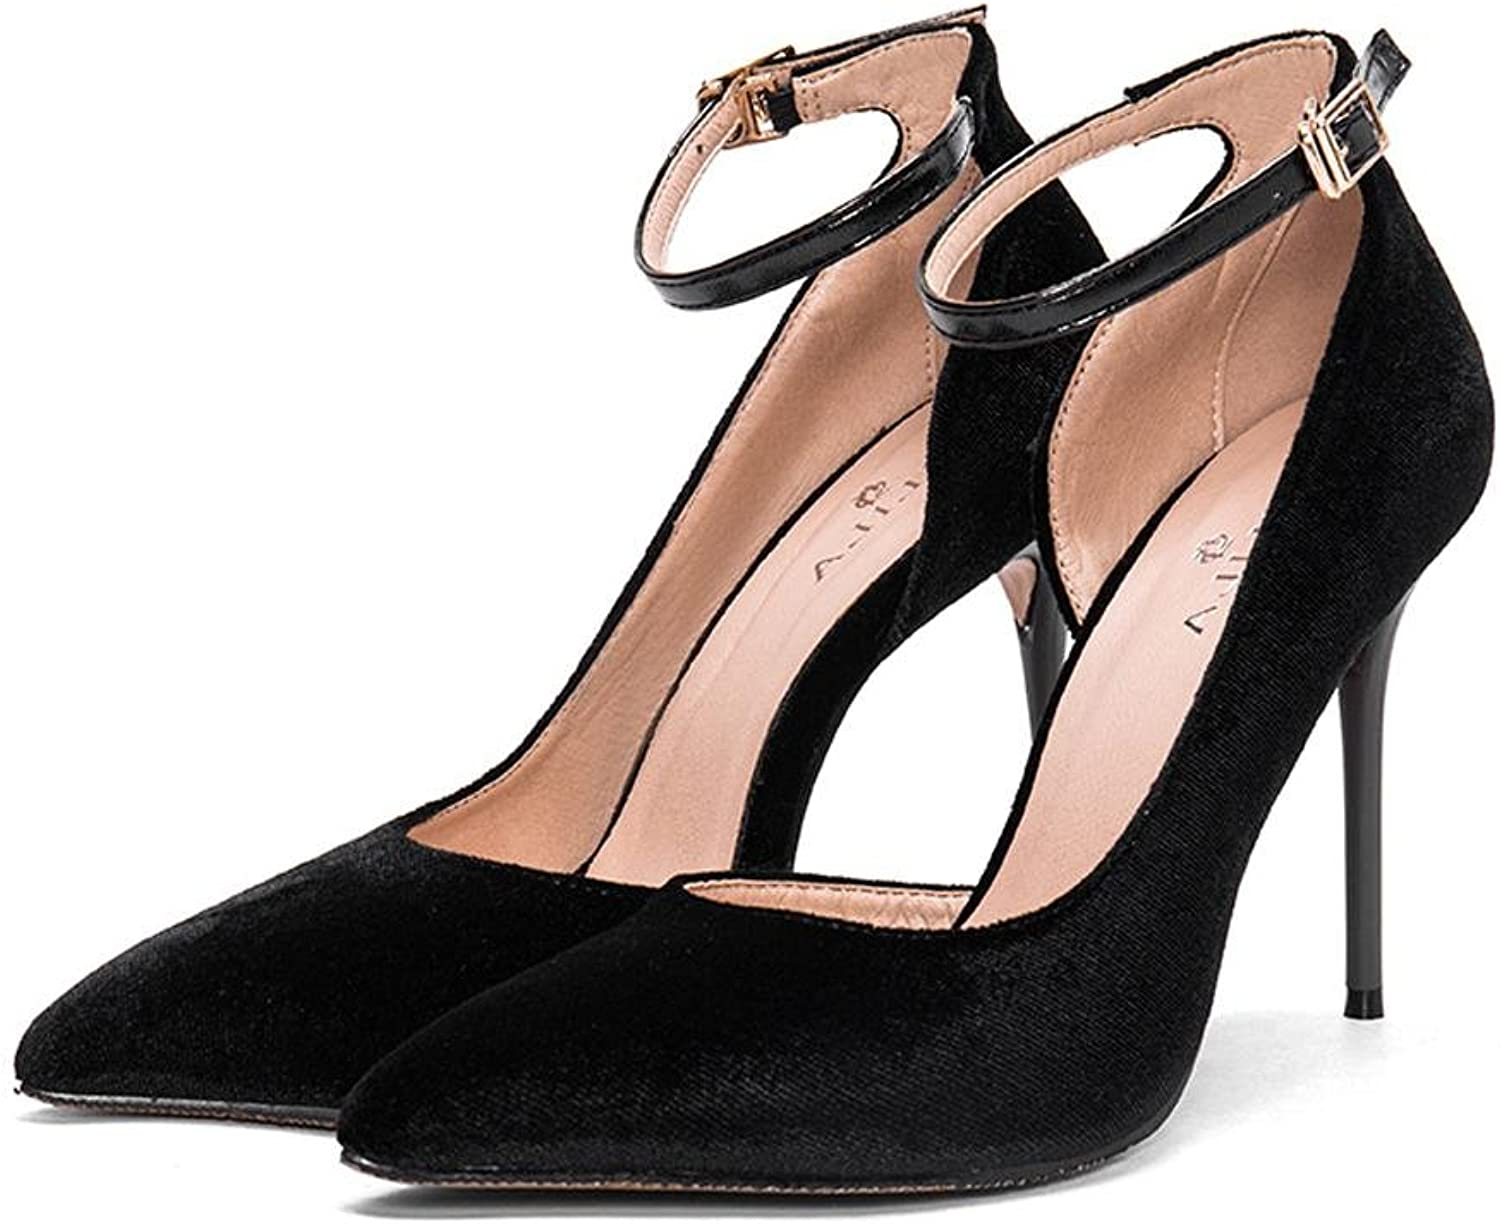 L@YC Women High Heels Side Empty Pointed Sandals Summer Fine with a Word Buckle Black Suede shoes Ladies